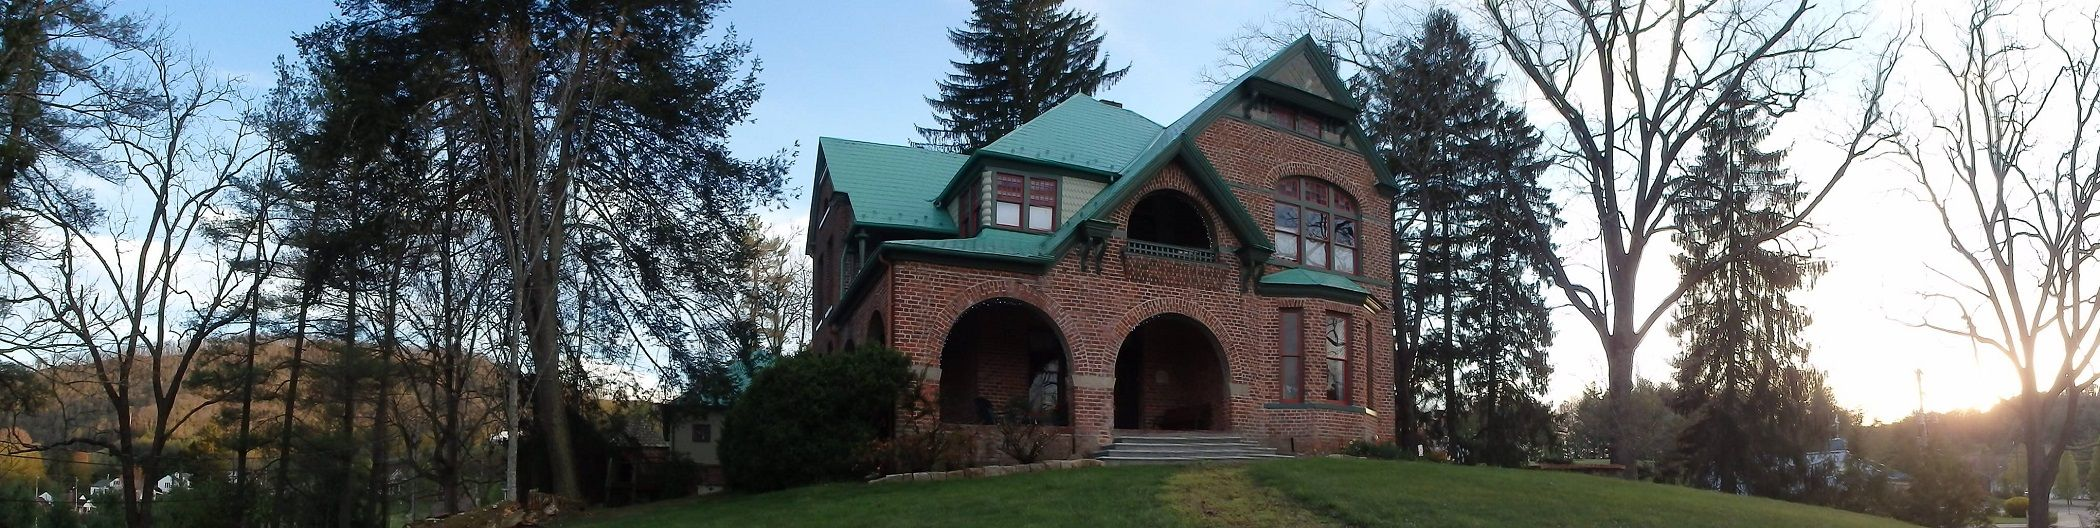 tn-prospect-hill-bed-and-breakfast-haunted-journeys2